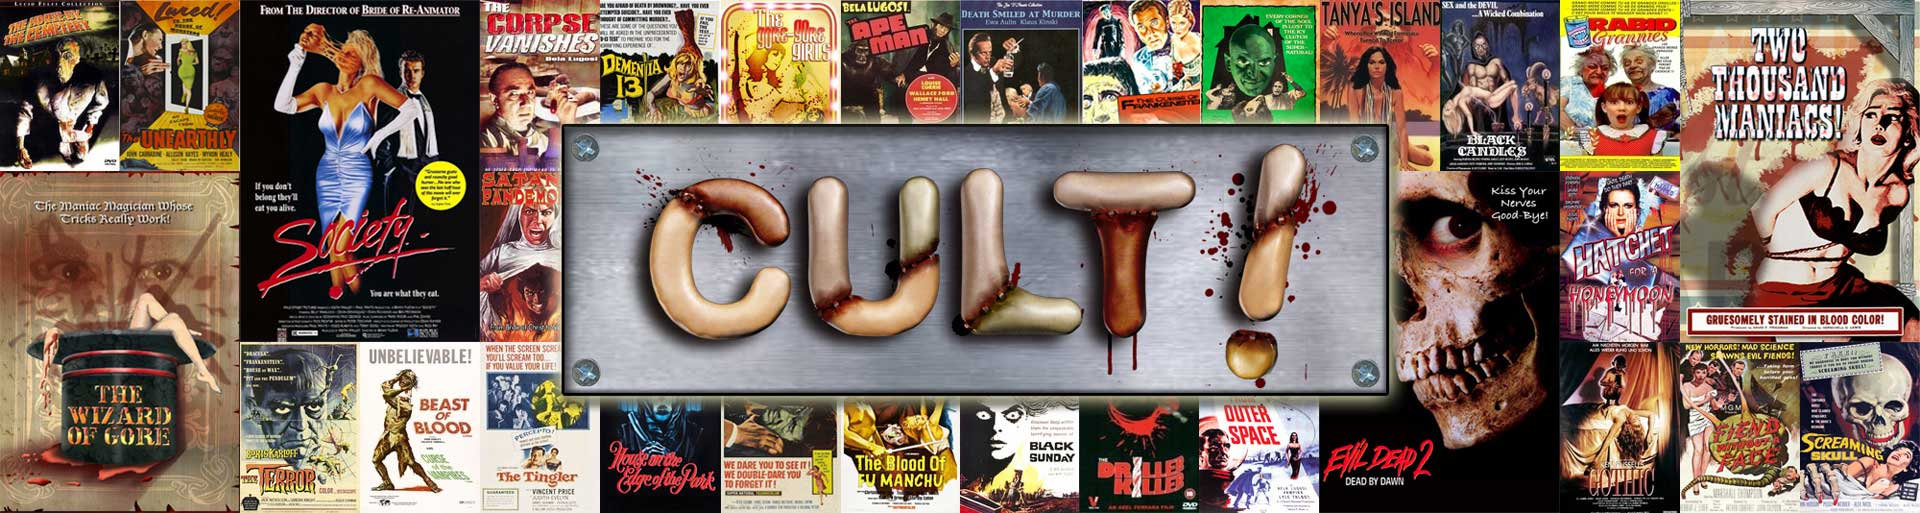 Watch Cult Movies